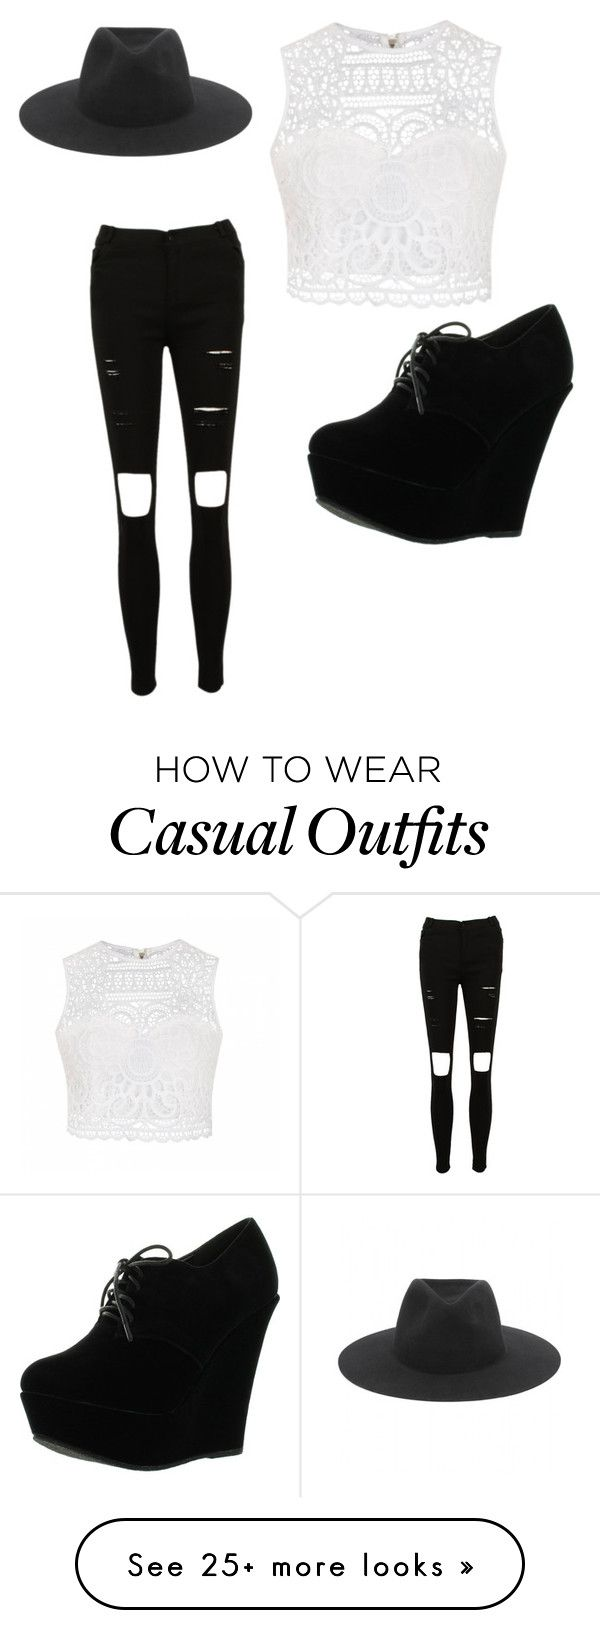 """""""Casually colorless"""" by rogue1290 on Polyvore featuring Ally Fashion, Forever Link and rag & bone"""